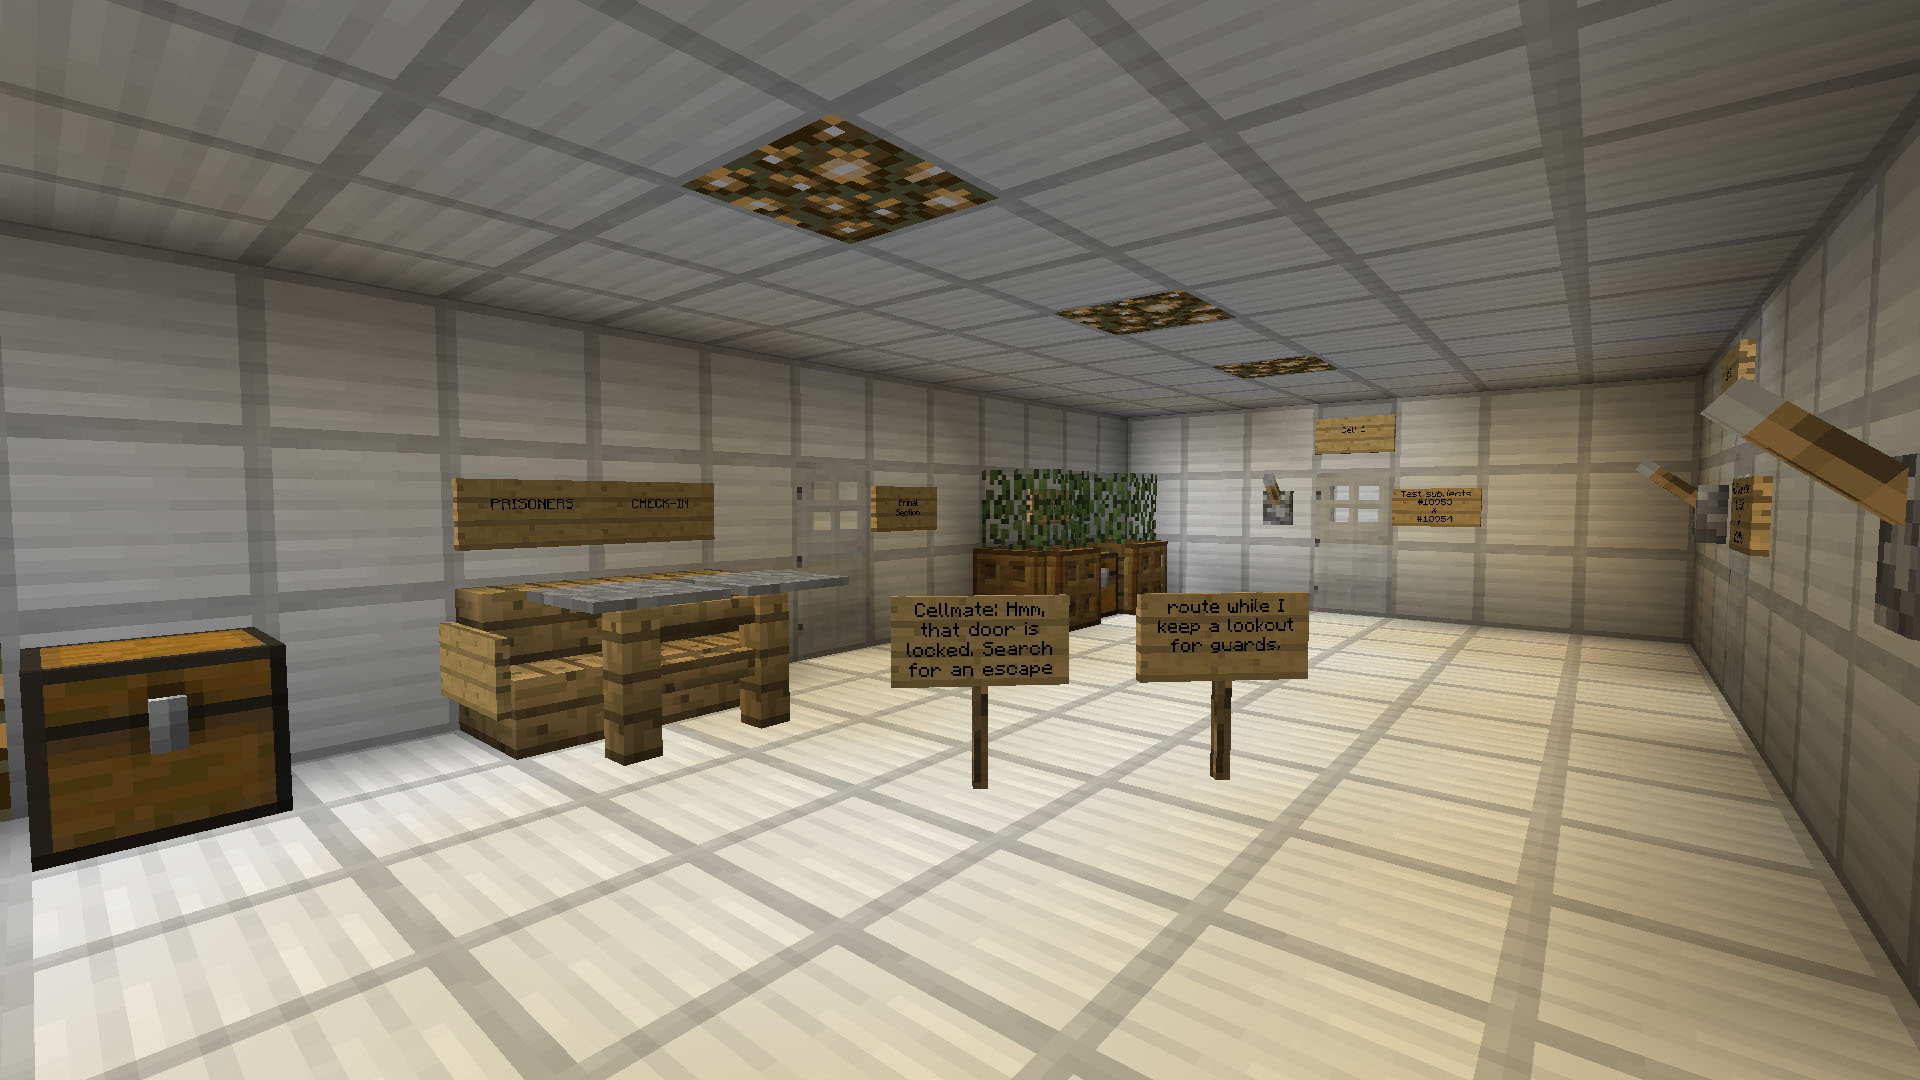 http://minecraft-forum.net/wp-content/uploads/2013/04/dc63c__Escape-The-Lab-Map-1.jpg